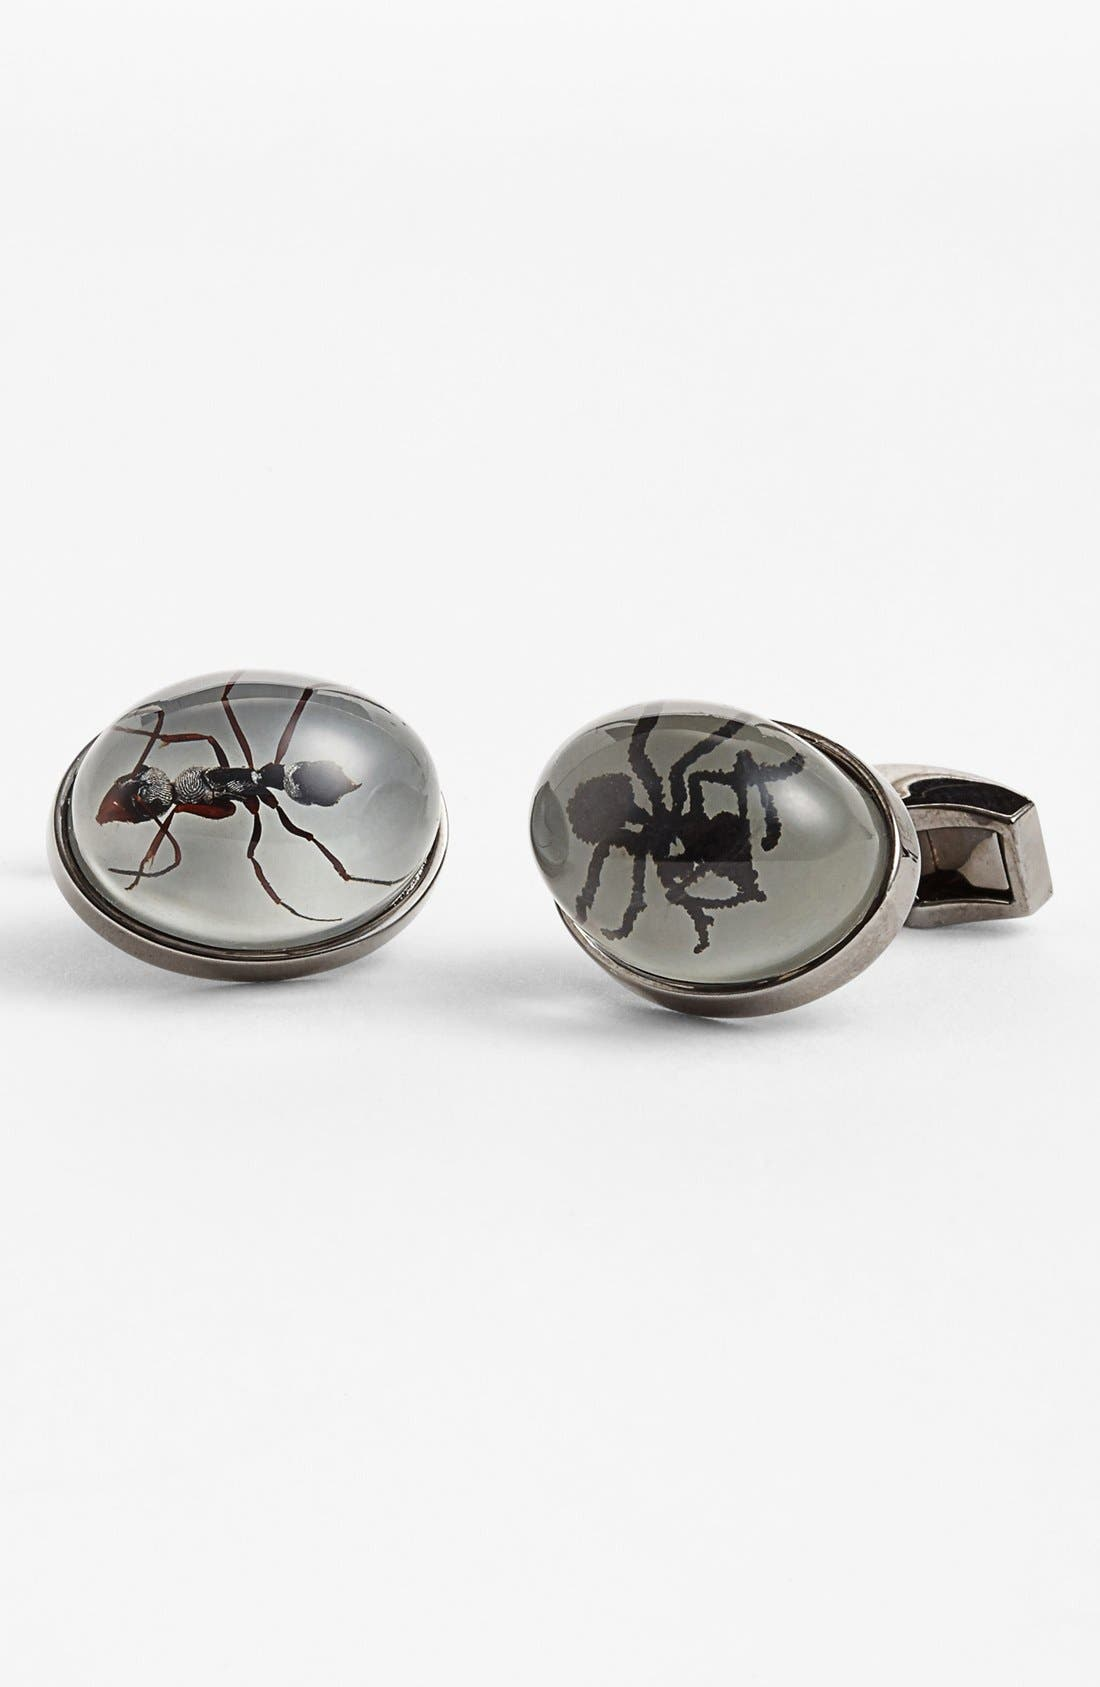 Main Image - Tateossian 'Deadly Creatures - Black Ant' Cuff Links